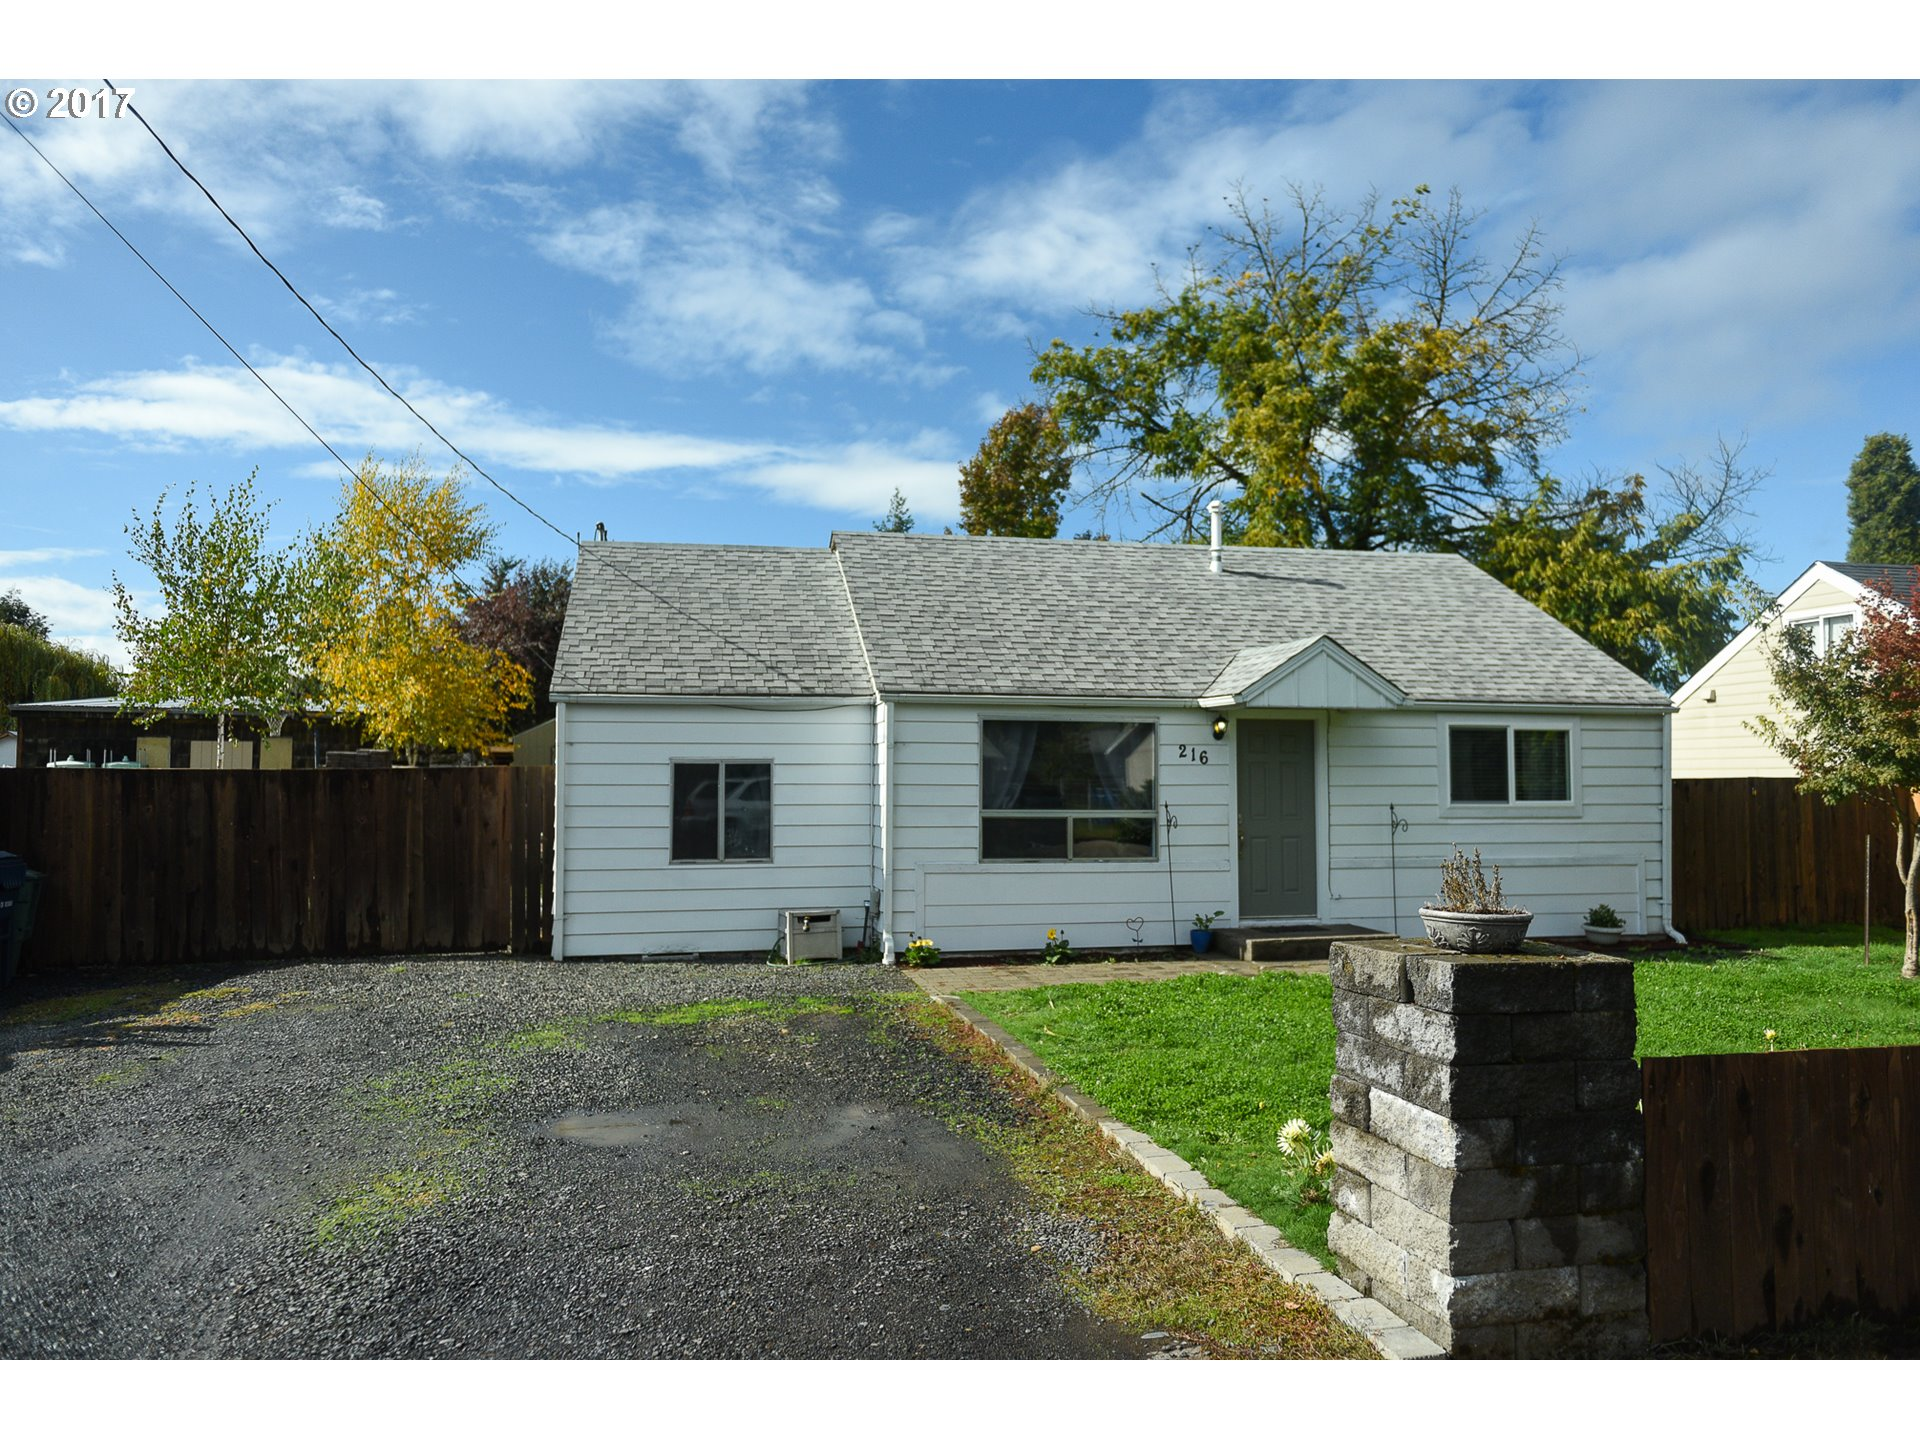 216 S 38TH ST, Springfield OR 97478